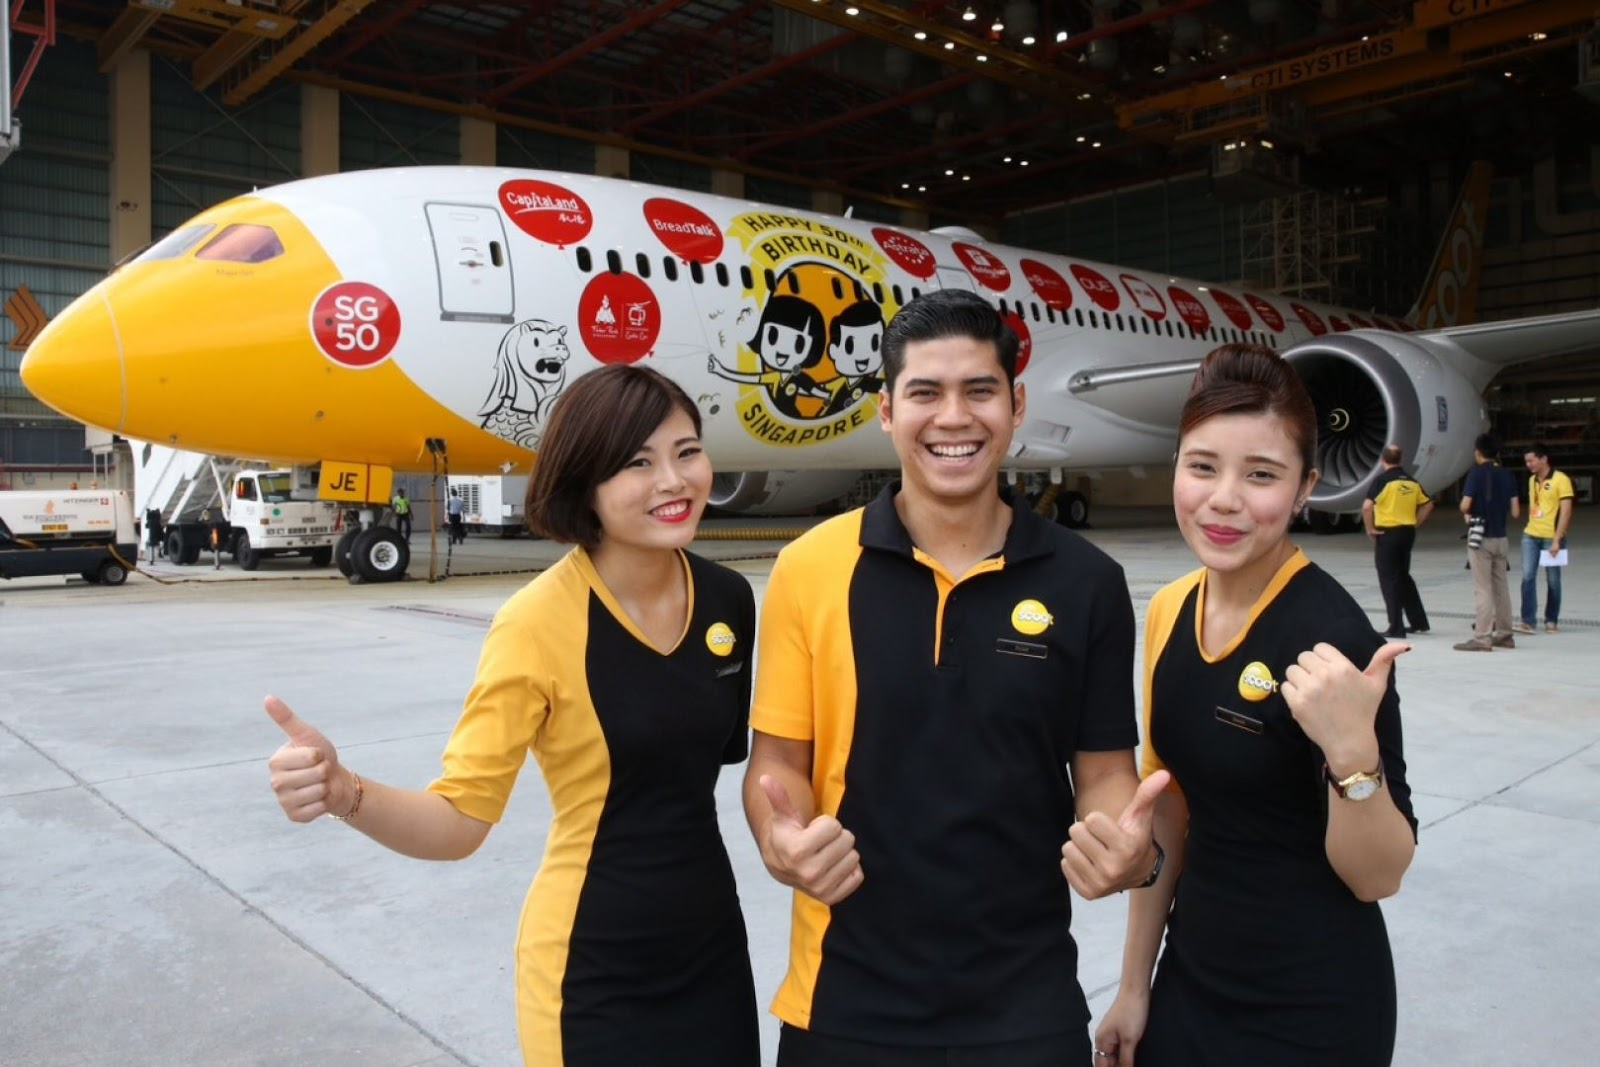 fly gosh: flyscoot cabin crew ( recruitment in malaysia )